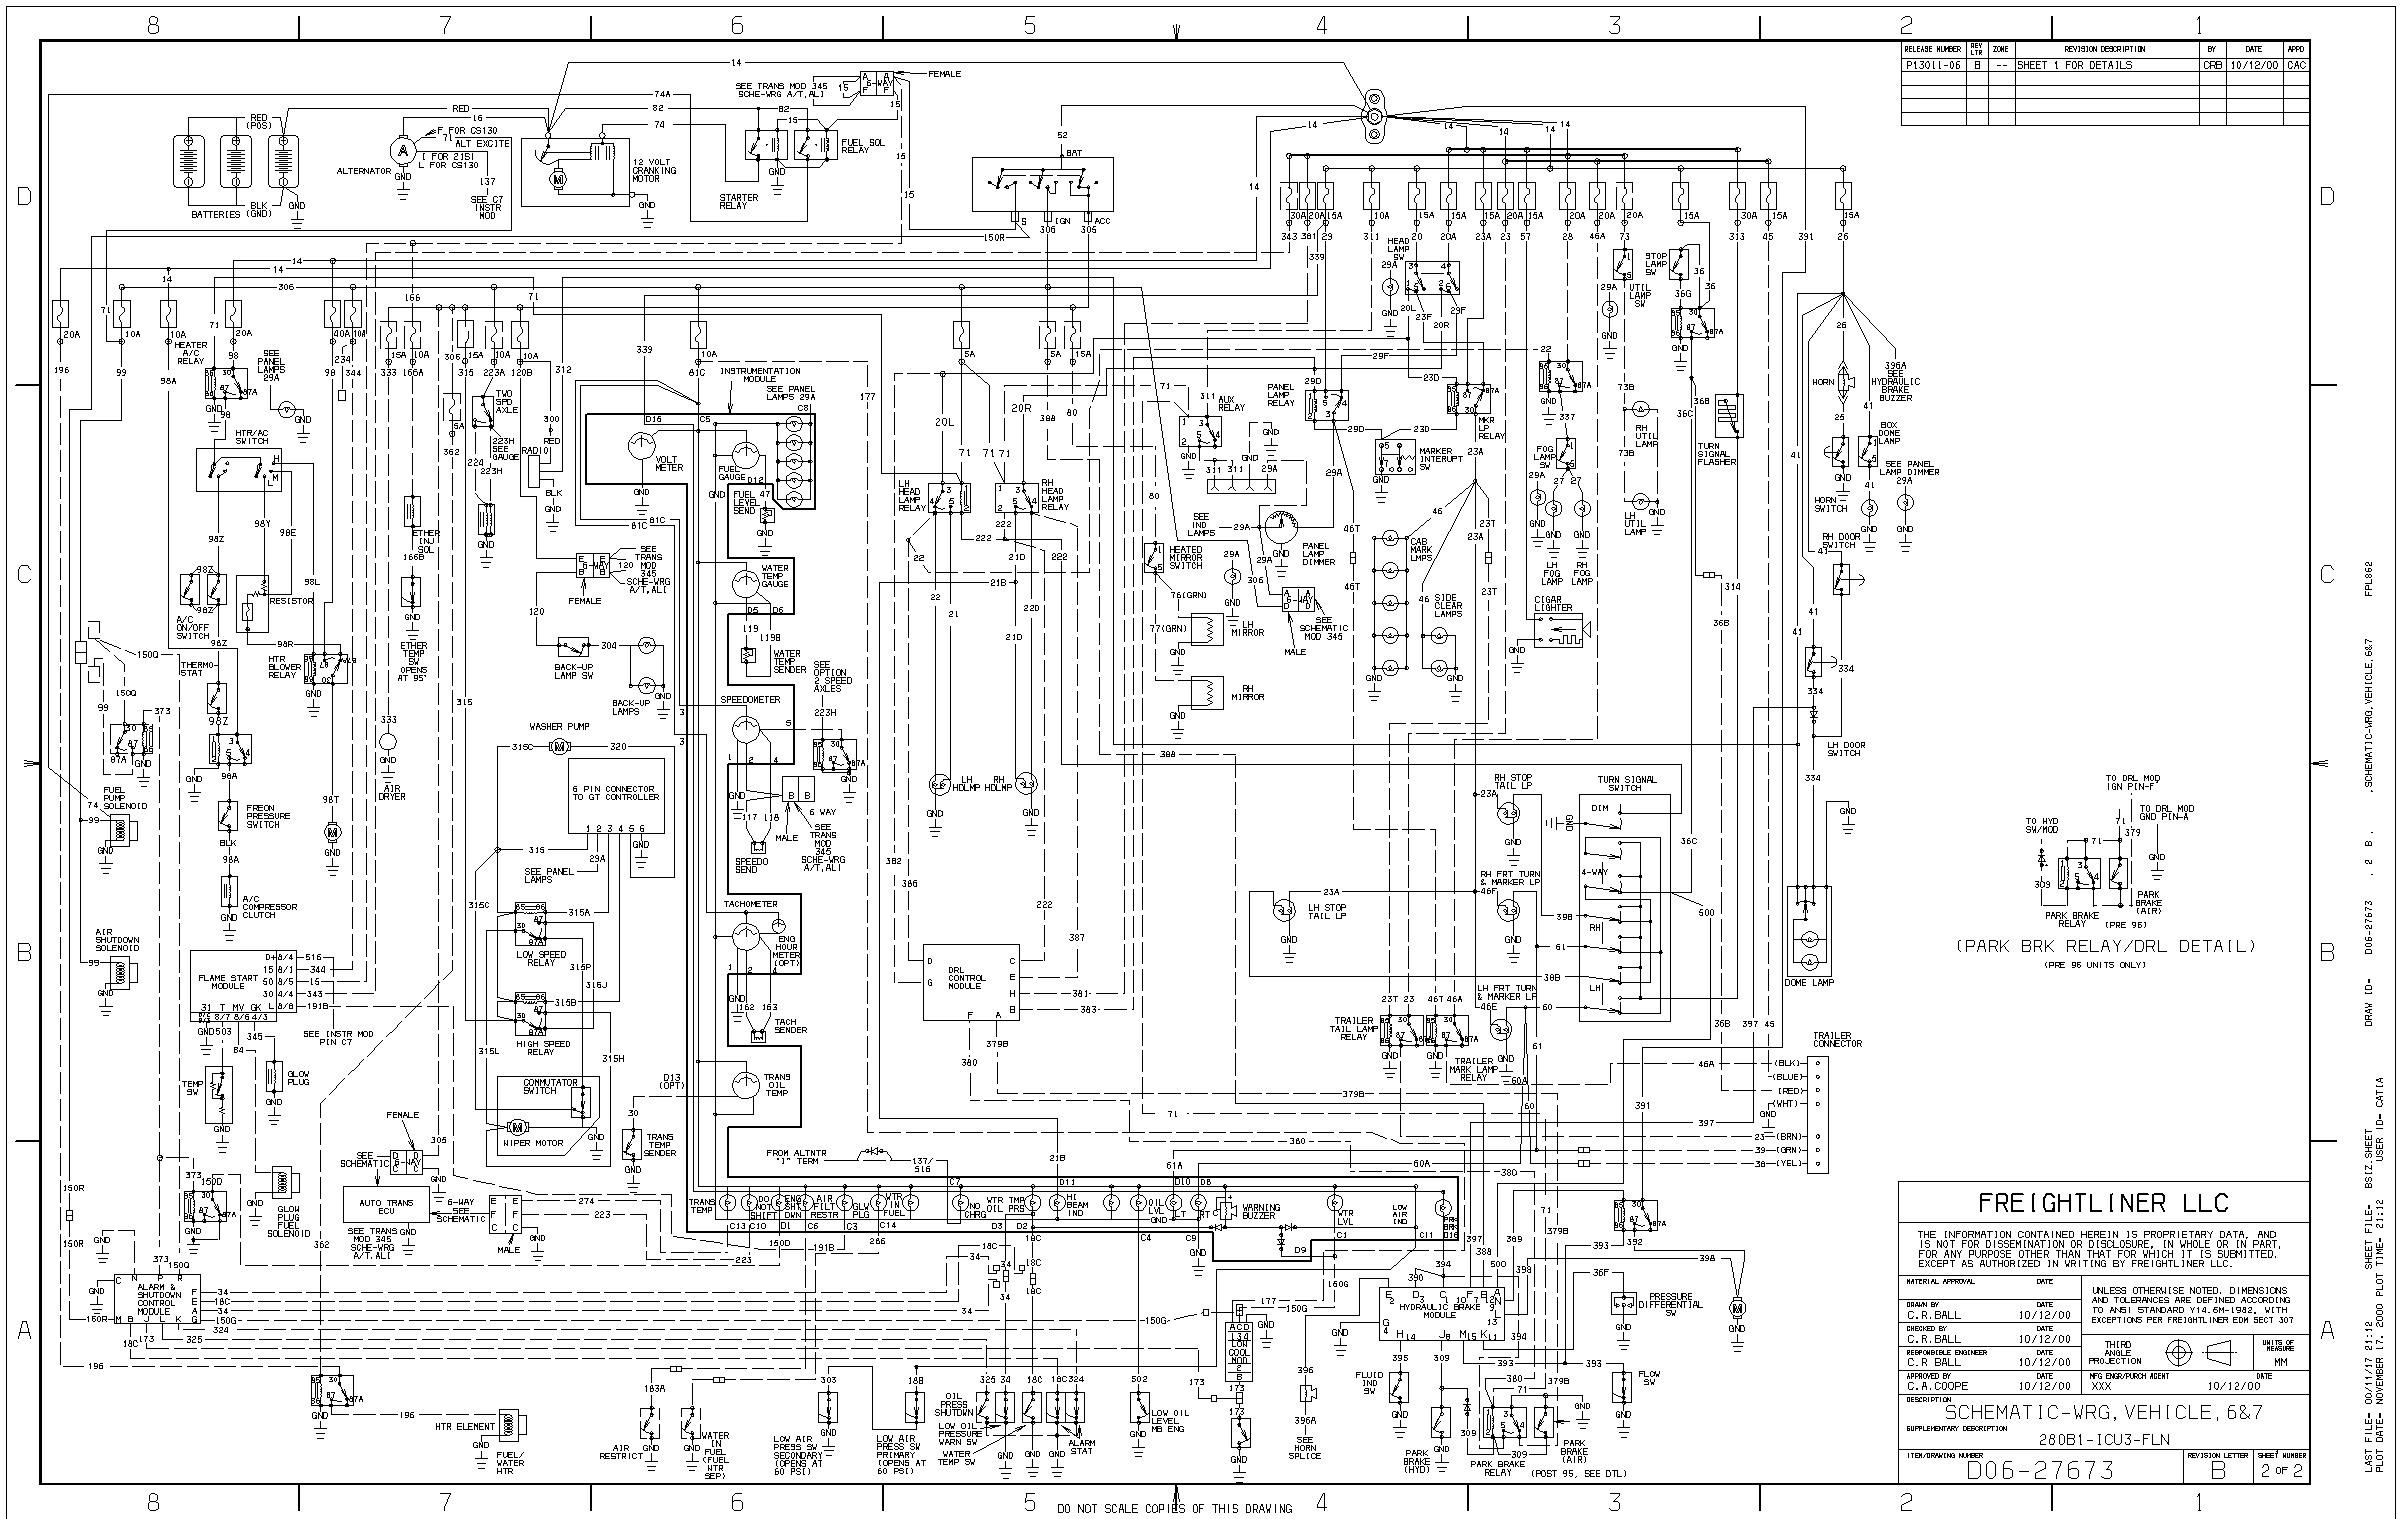 2000 Camry Engine Diagram Wiring Diagram Sterling Truck Wiring Diagrams 2003 toyota Camry 2 4 Of 2000 Camry Engine Diagram